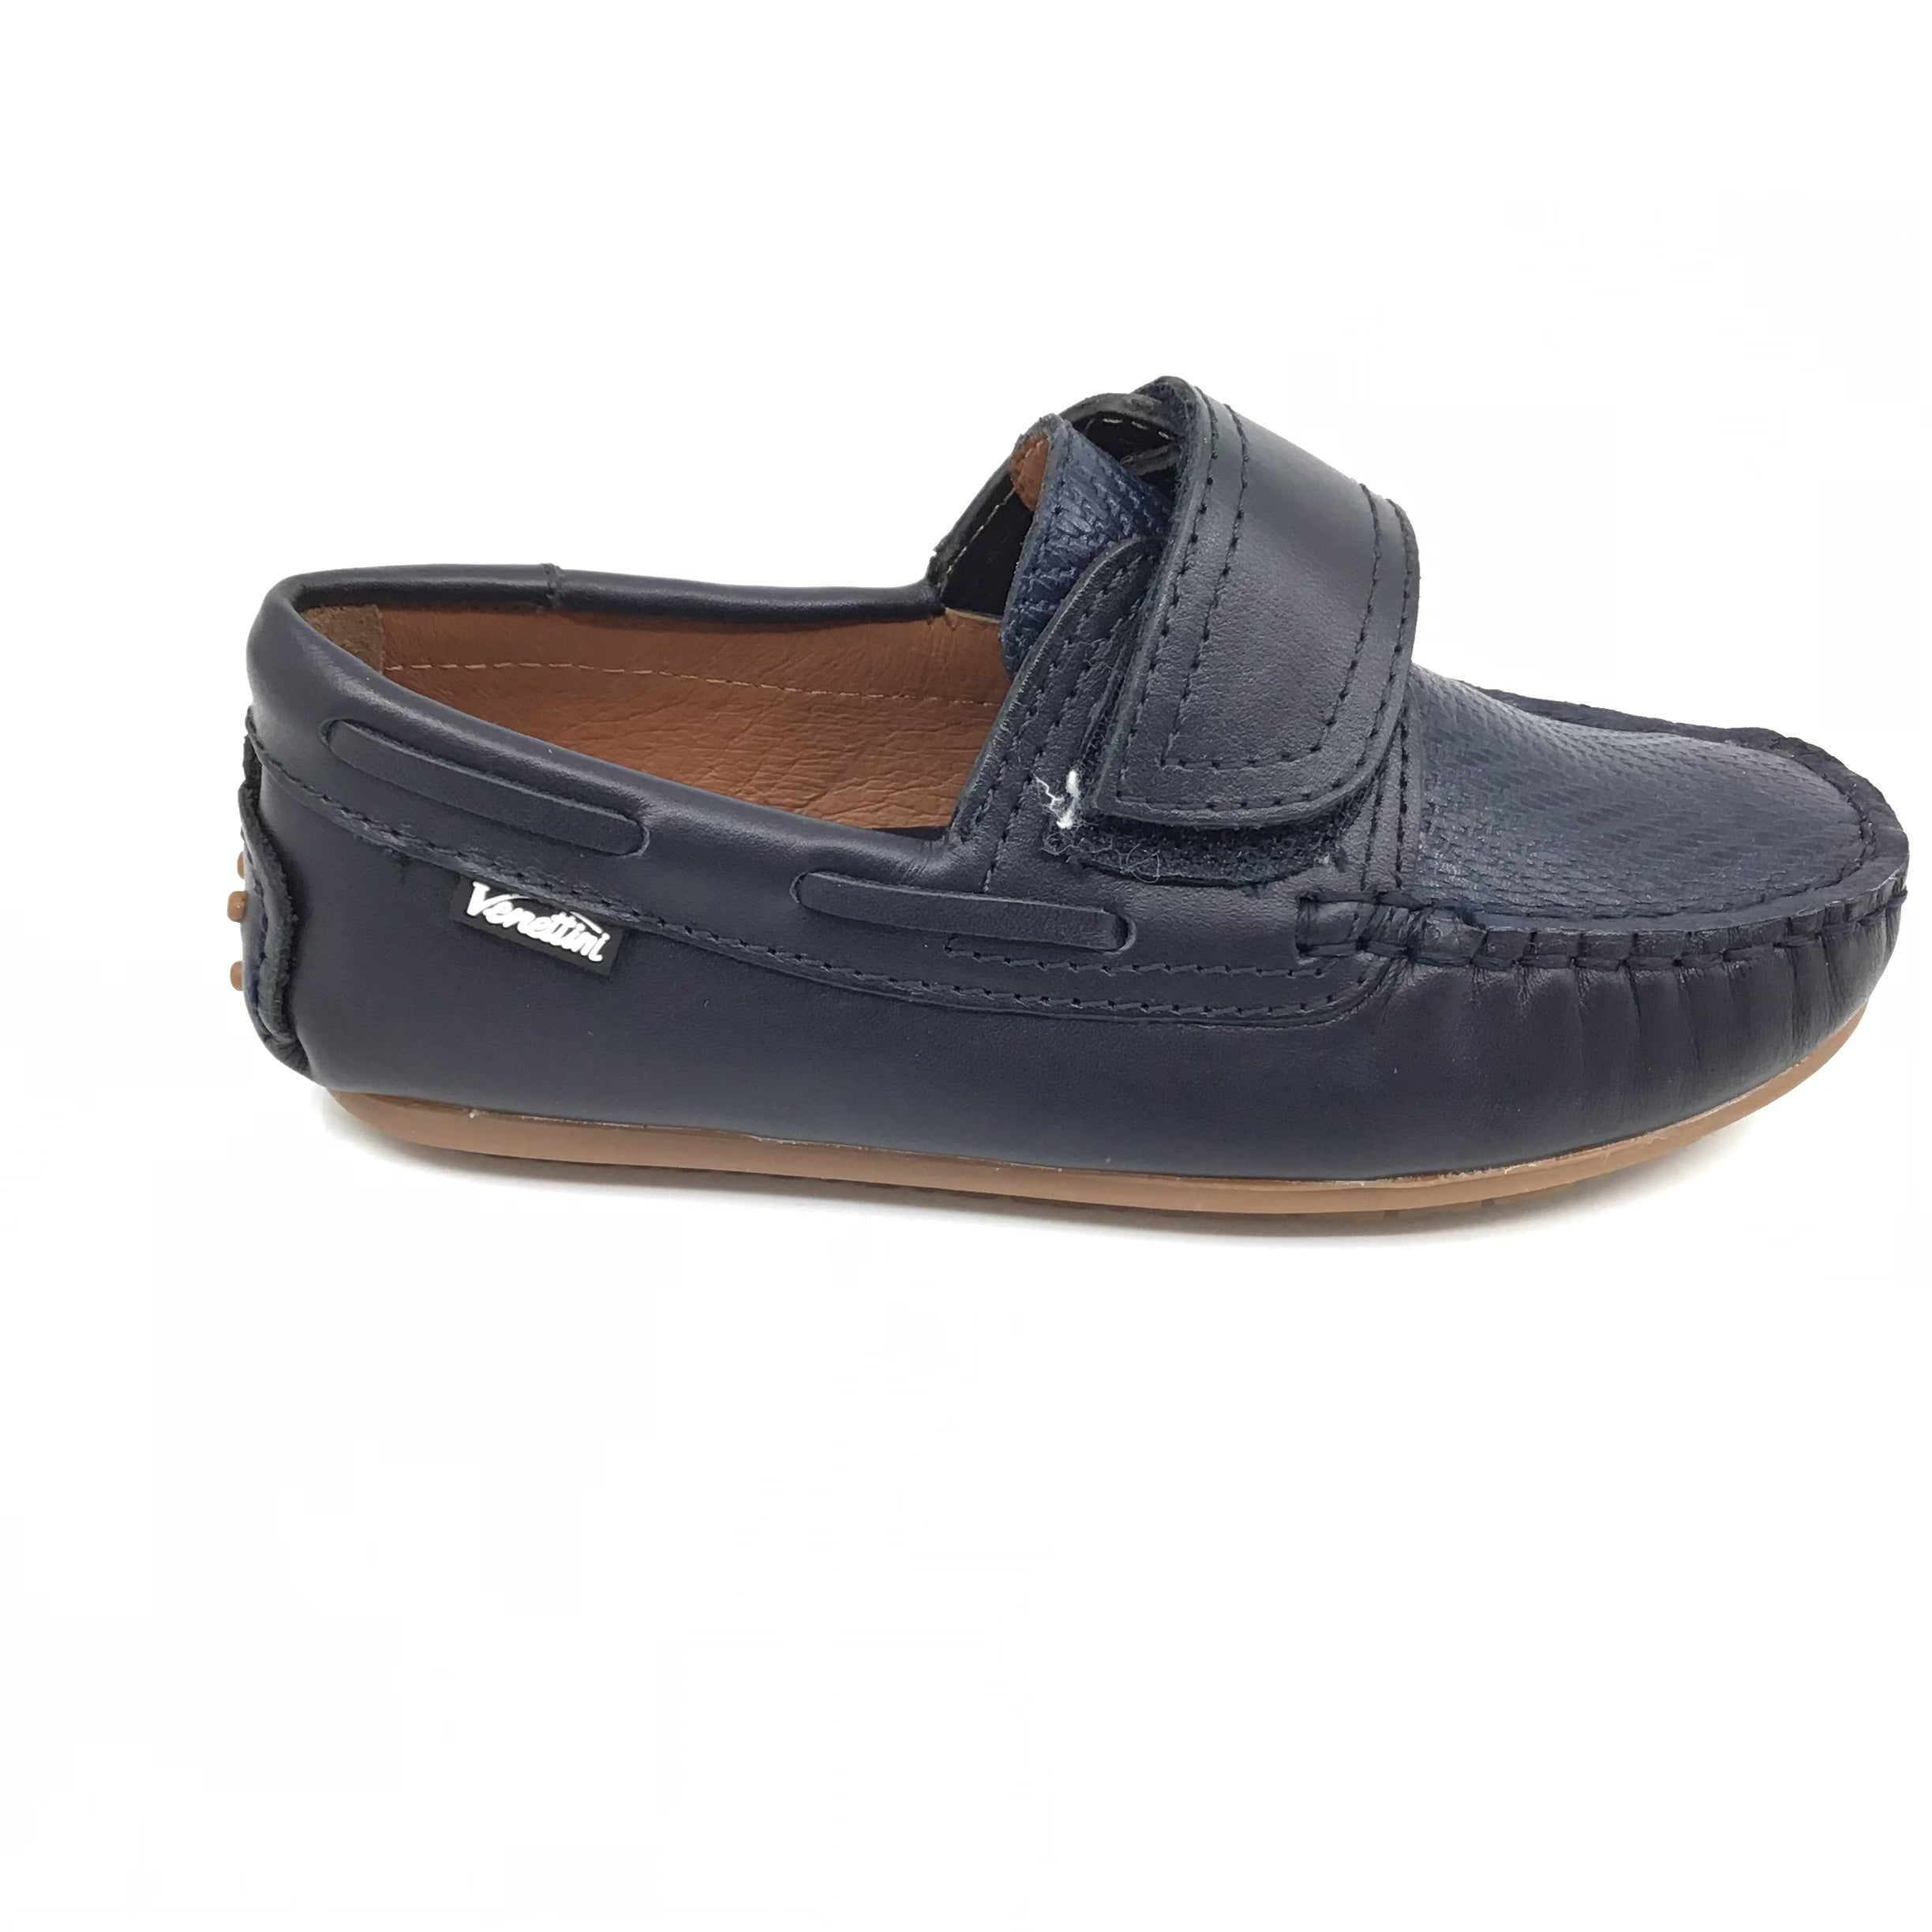 Venettini Navy Velcro Moccasin